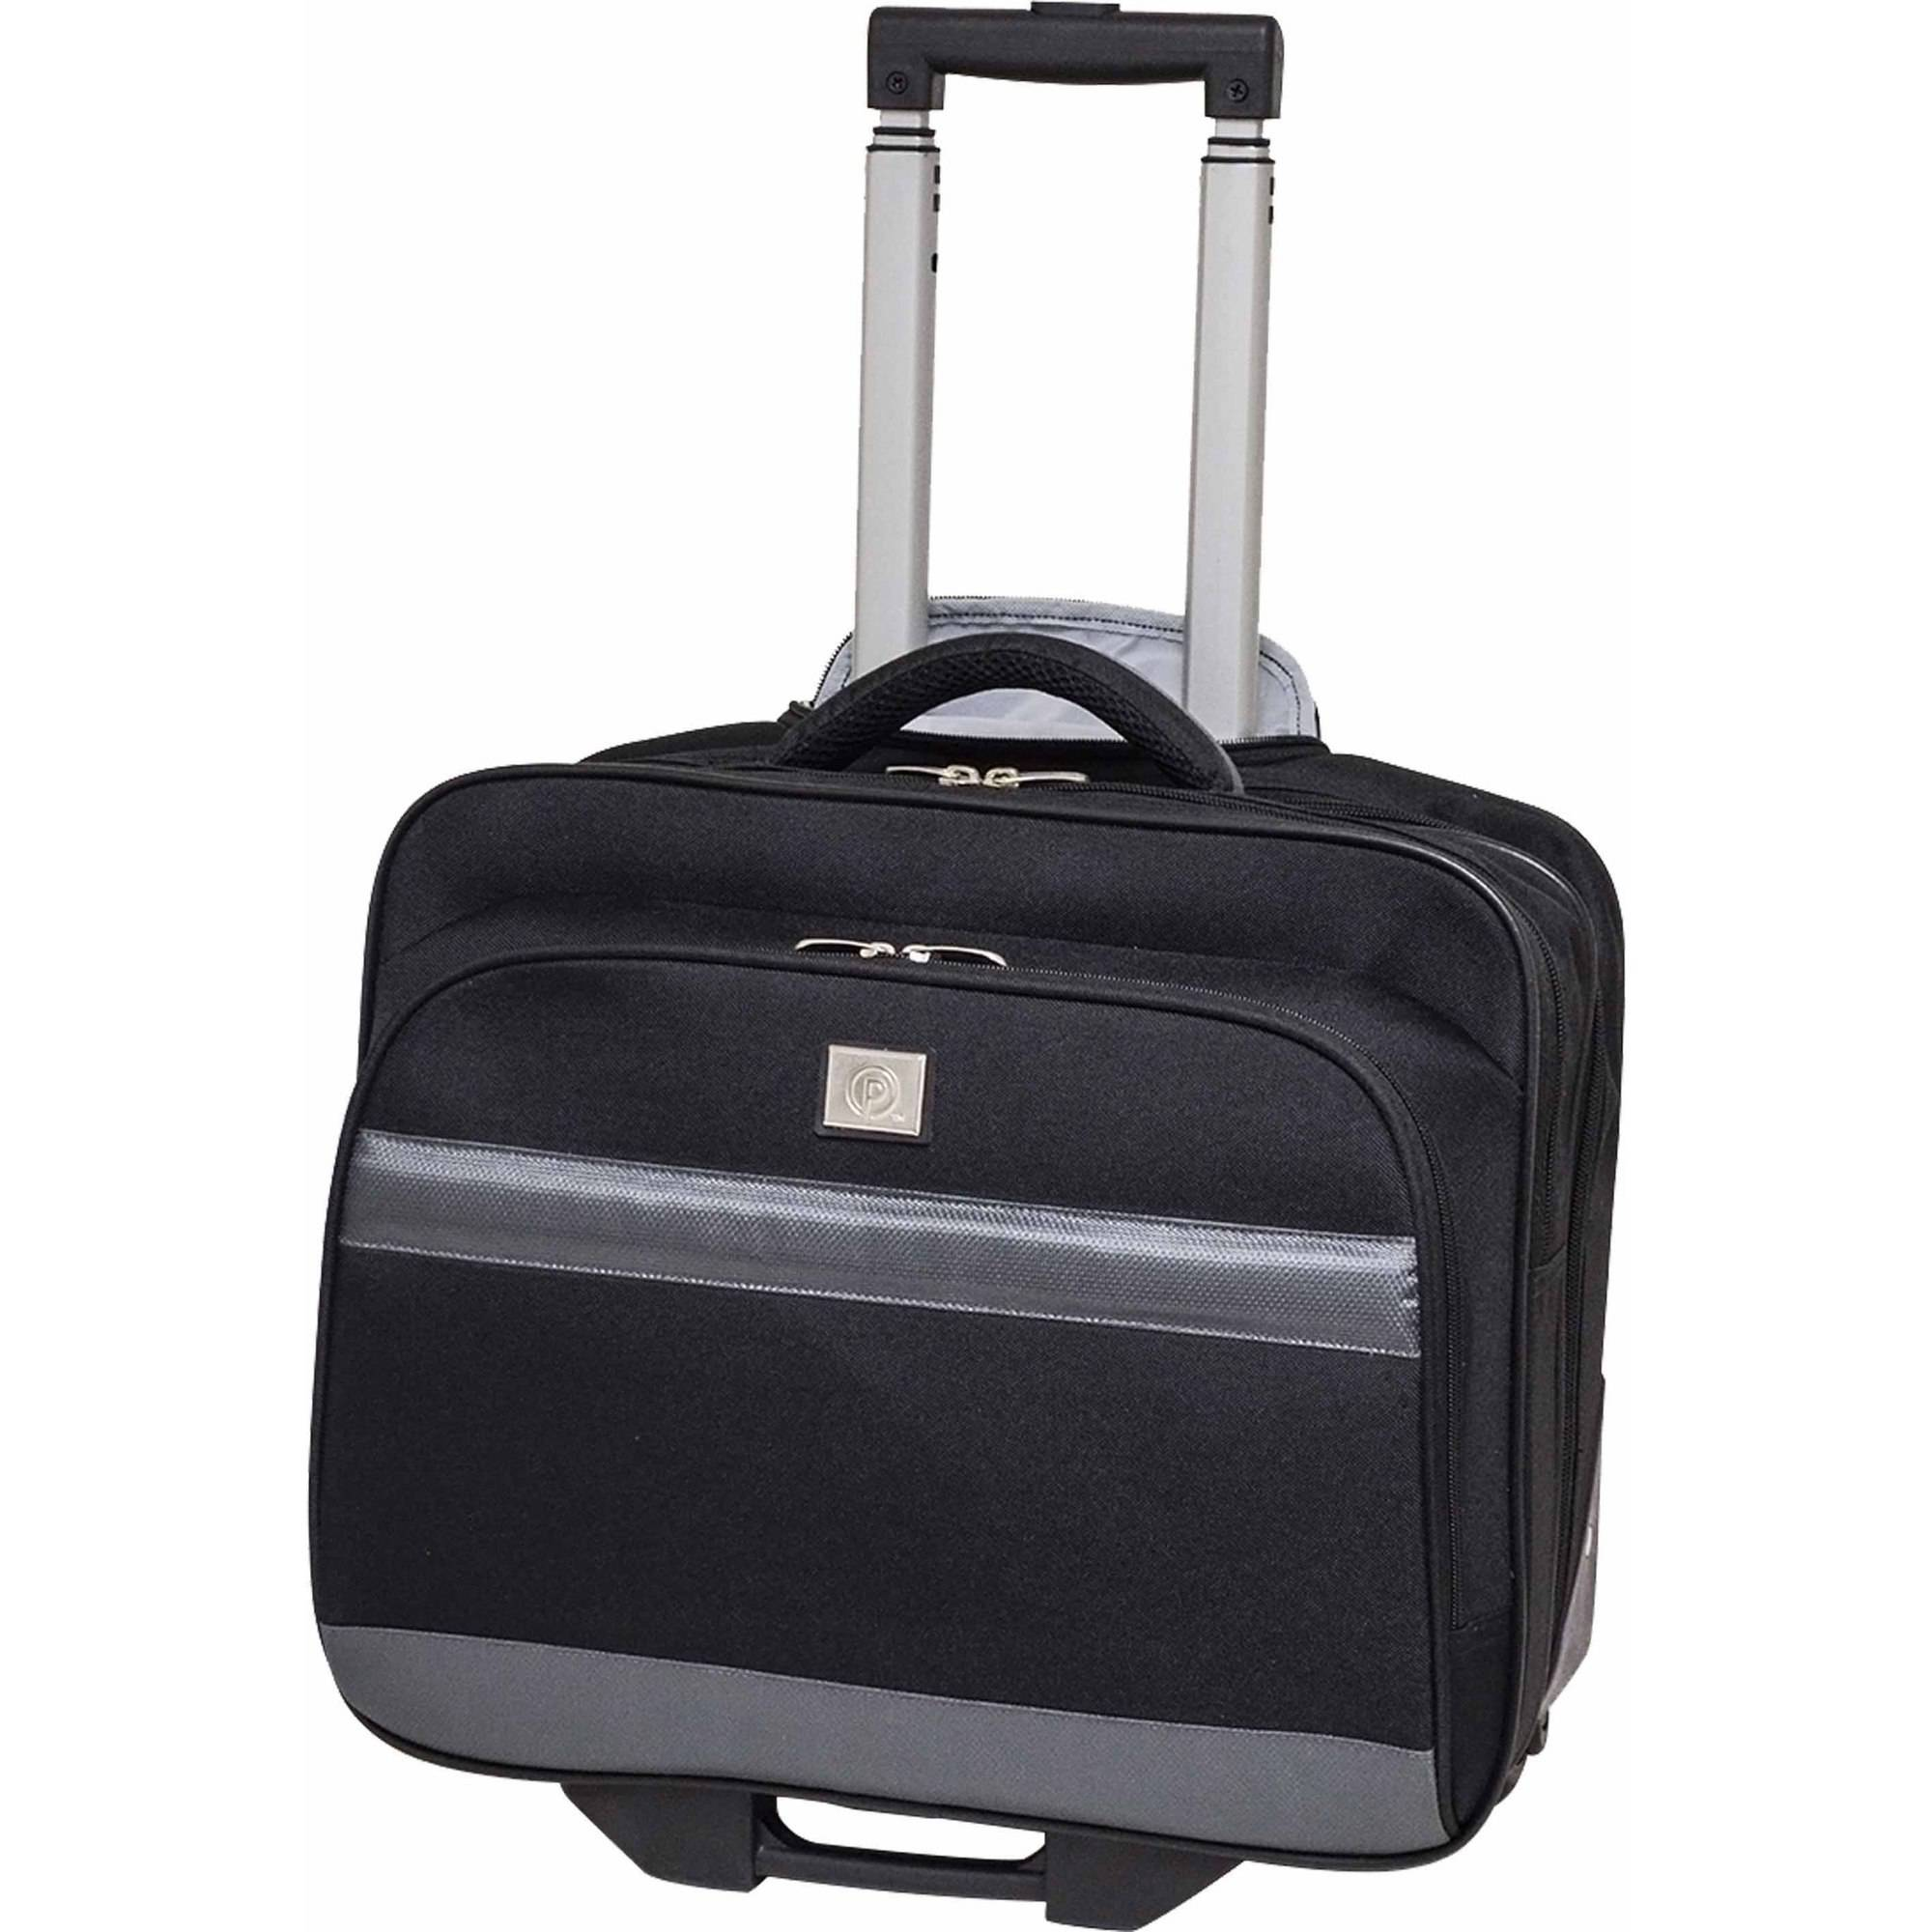 "Protege 16"" Rolling Briefcase with Laptop Section, Black"